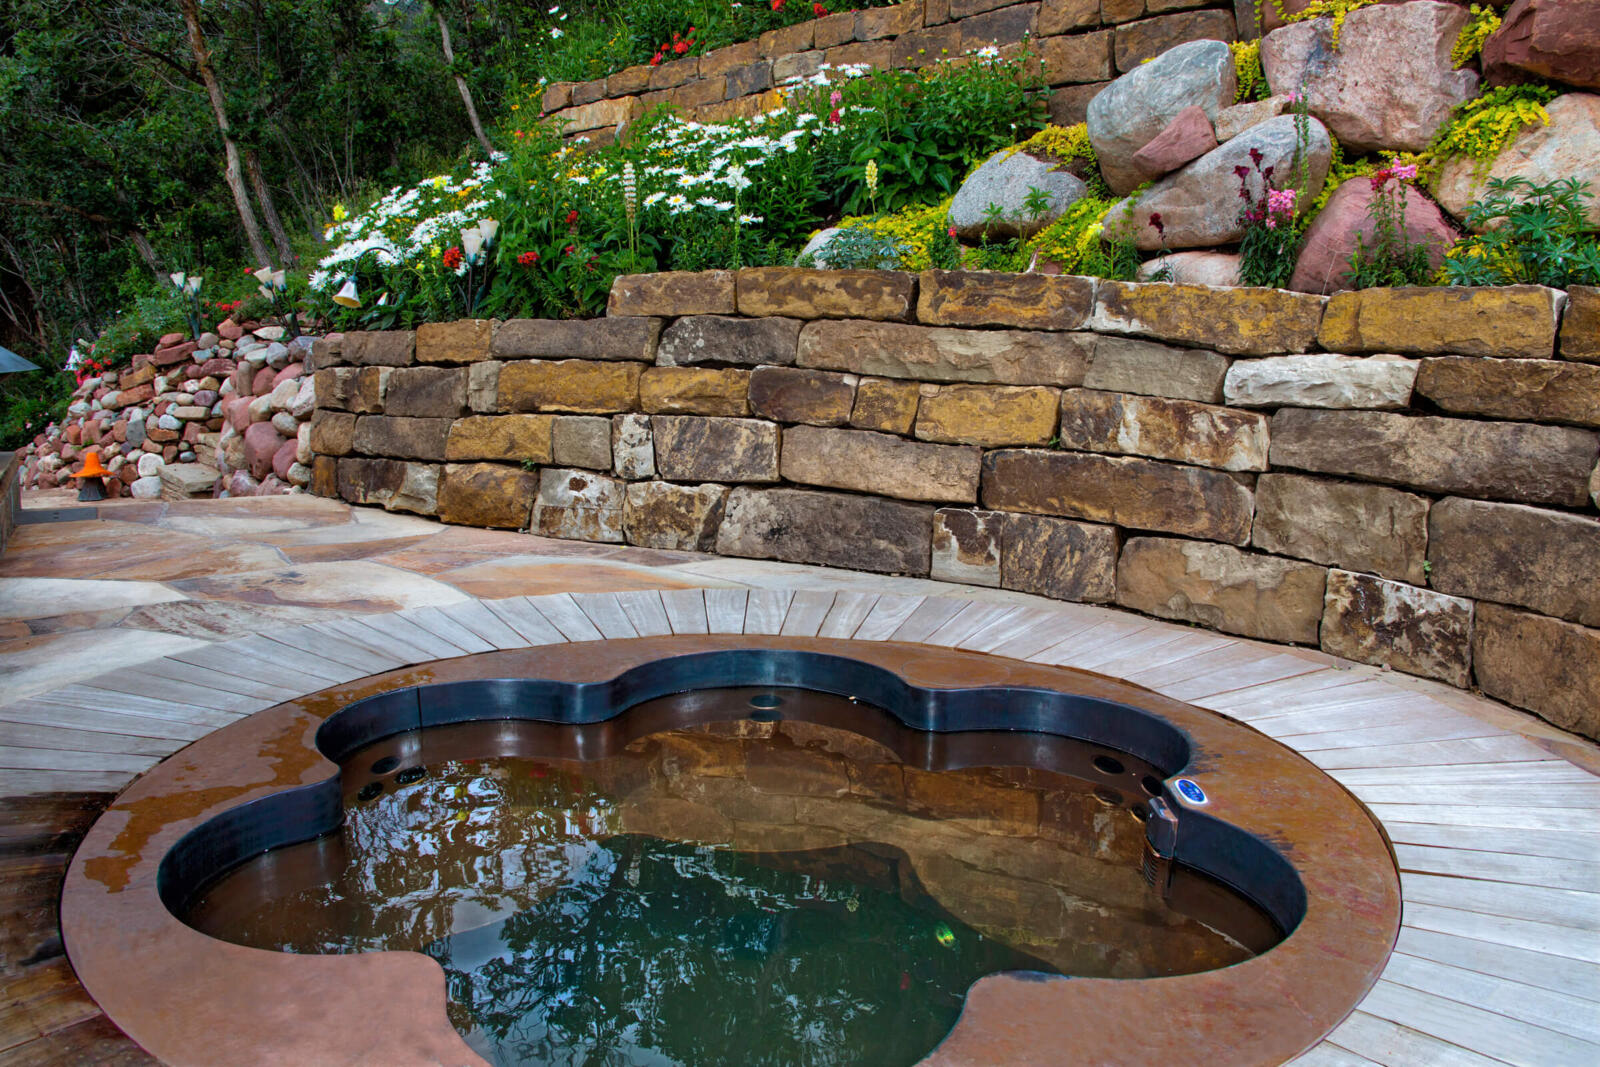 Diamond Spas Japanese Soaking Tub Japanese Soaking Tubs - Outdoor japanese soaking tub